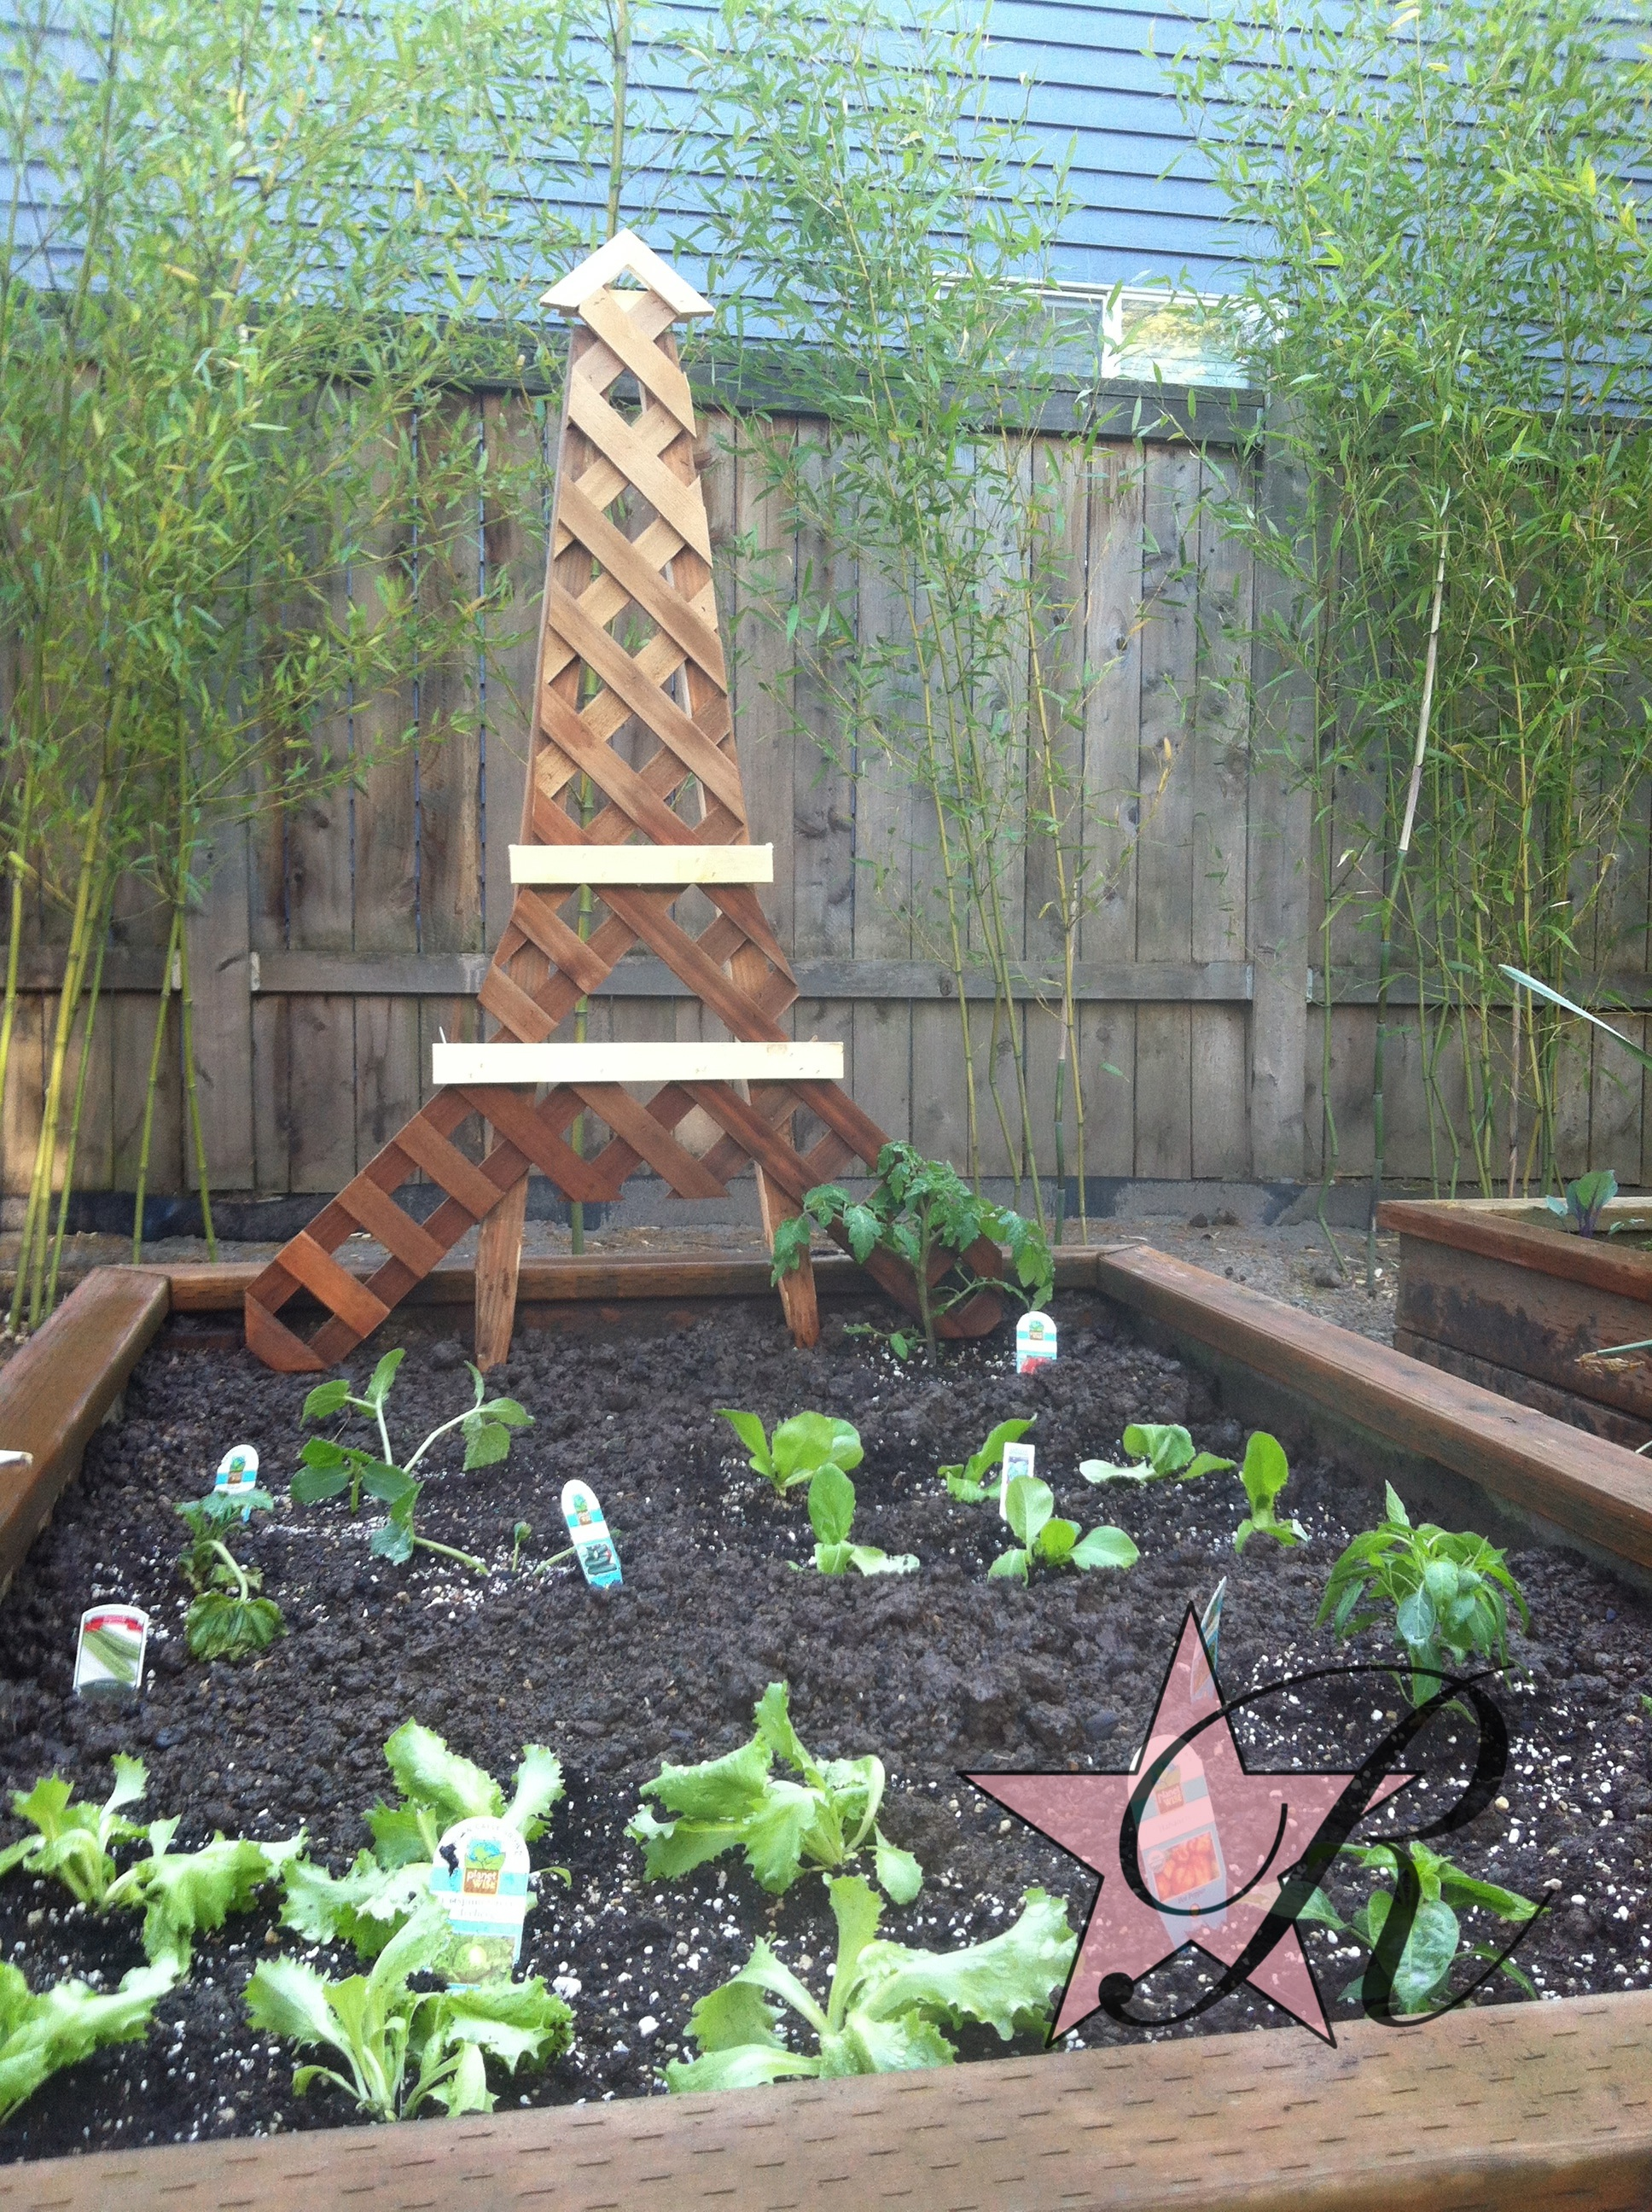 After adding lattice to an existing fence for added privacy and security, Rockstar Remodel used some of the leftover lattice to make a Eiffel Tower trellis for the tomato vines to climb.